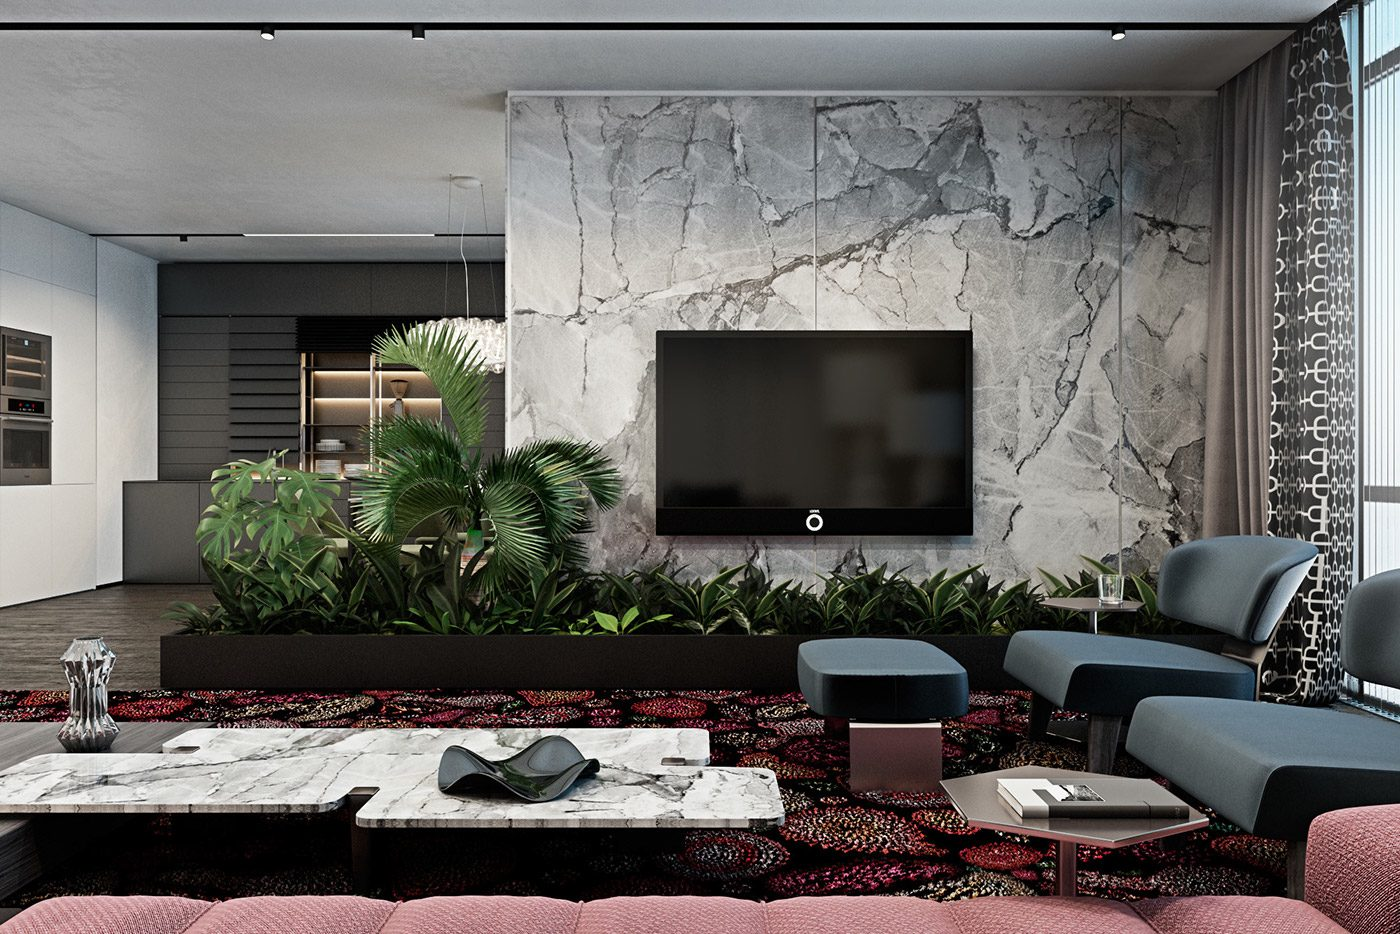 The Natural Side Of 3 Neutral Color Living Room Designs: A Pair Of Dark Themed Homes With Sophisticated Accent Colors